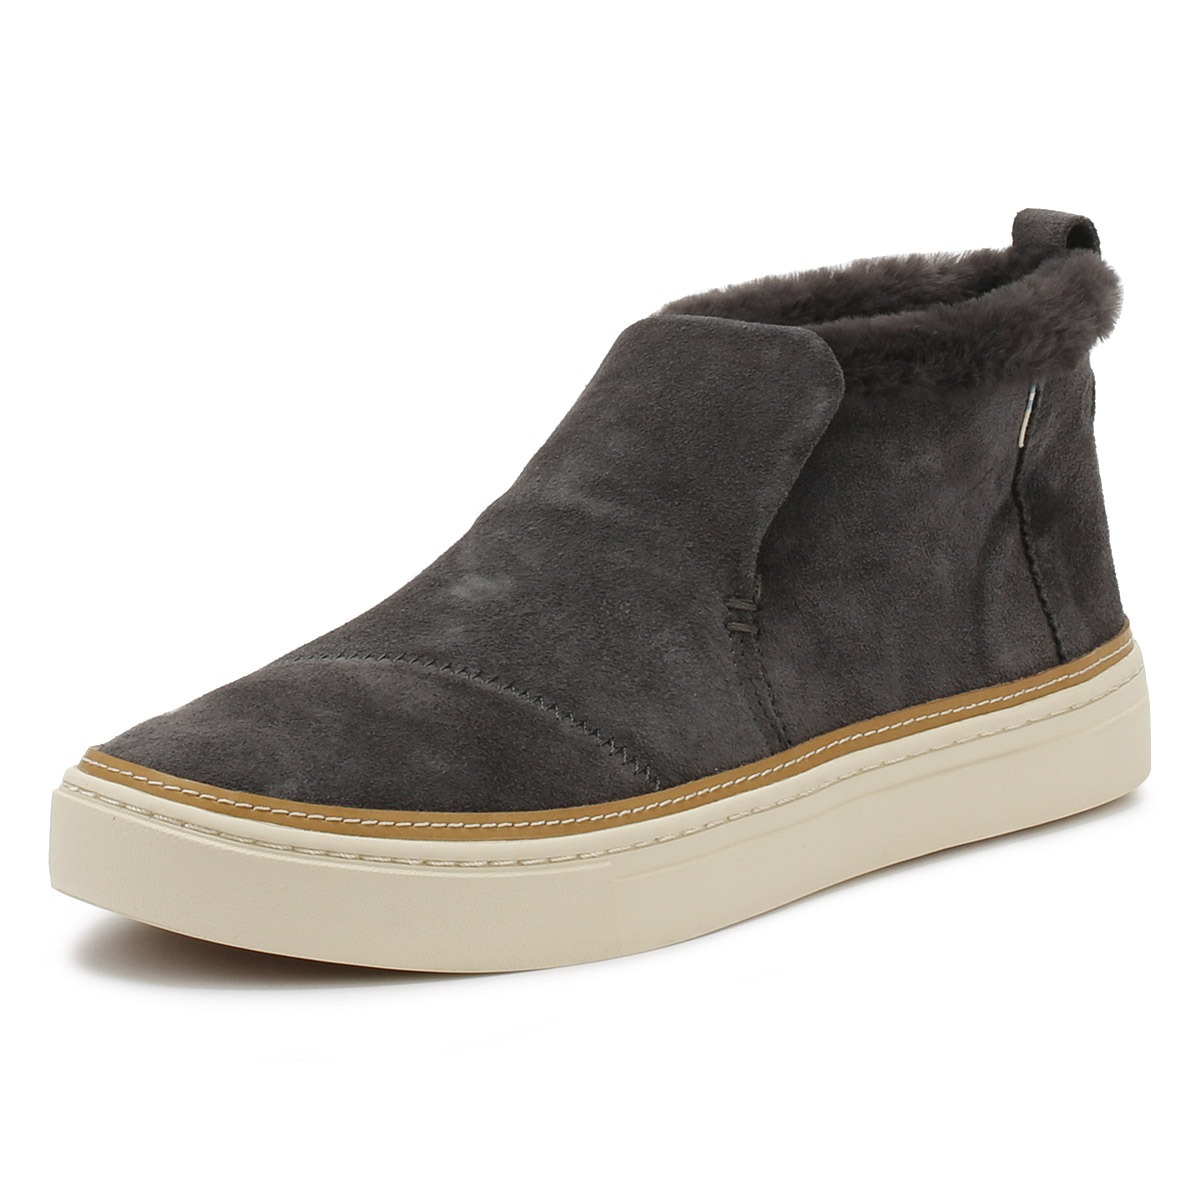 82fe4cb95ed Details about TOMS Womens Grey Suede Paxton Shoes Ladies Slip On Casual  Ankle Boots